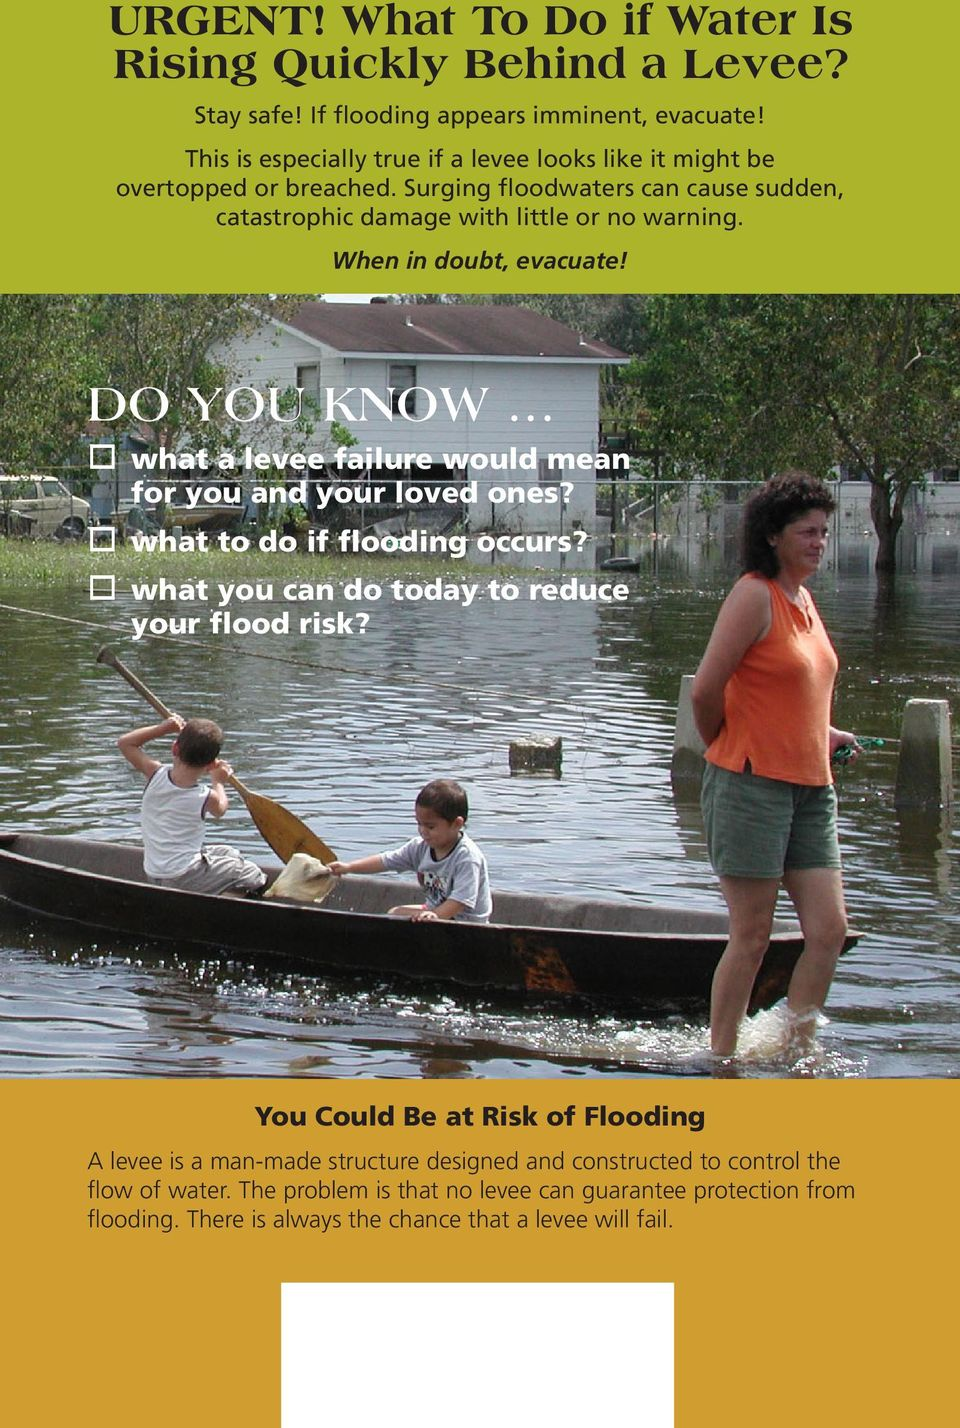 When in doubt, evacuate! DO YOU KNOW... o what a levee failure would mean for you and your loved ones? o what to do if flooding occurs?